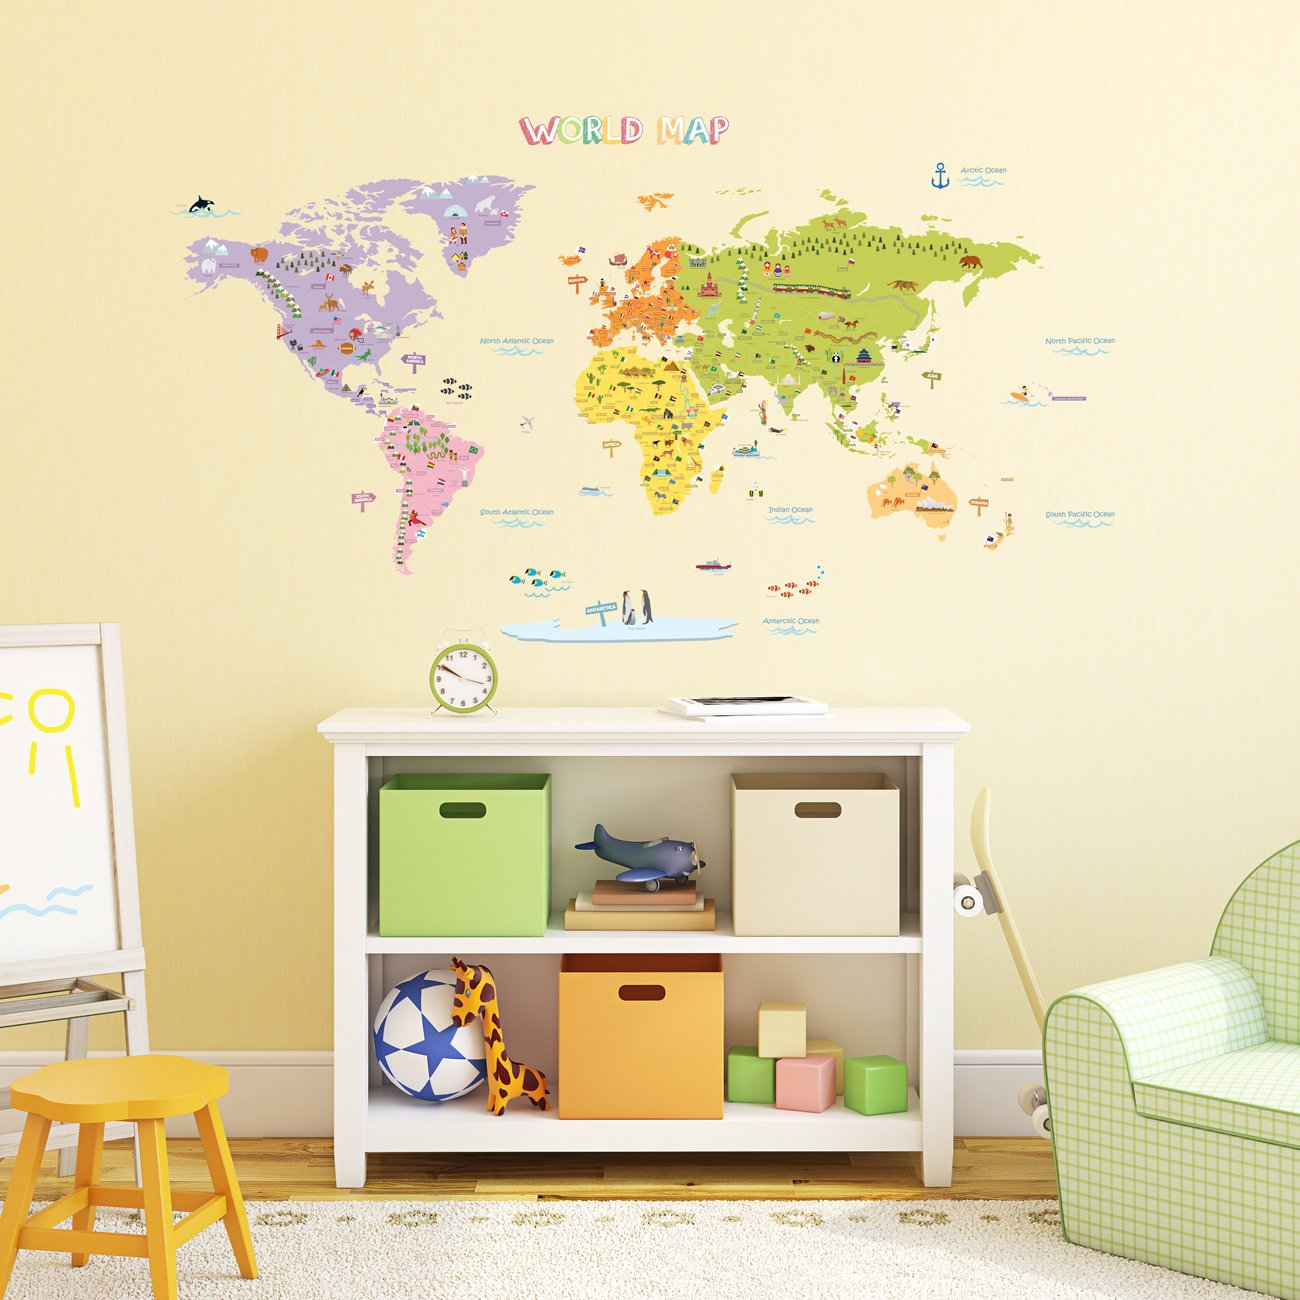 Wall stickers map of the world - Decowall Dmt 1306 Colorful World Map Peel And Stick Nursery Kids Wall Decals Stickers Large Amazon Com